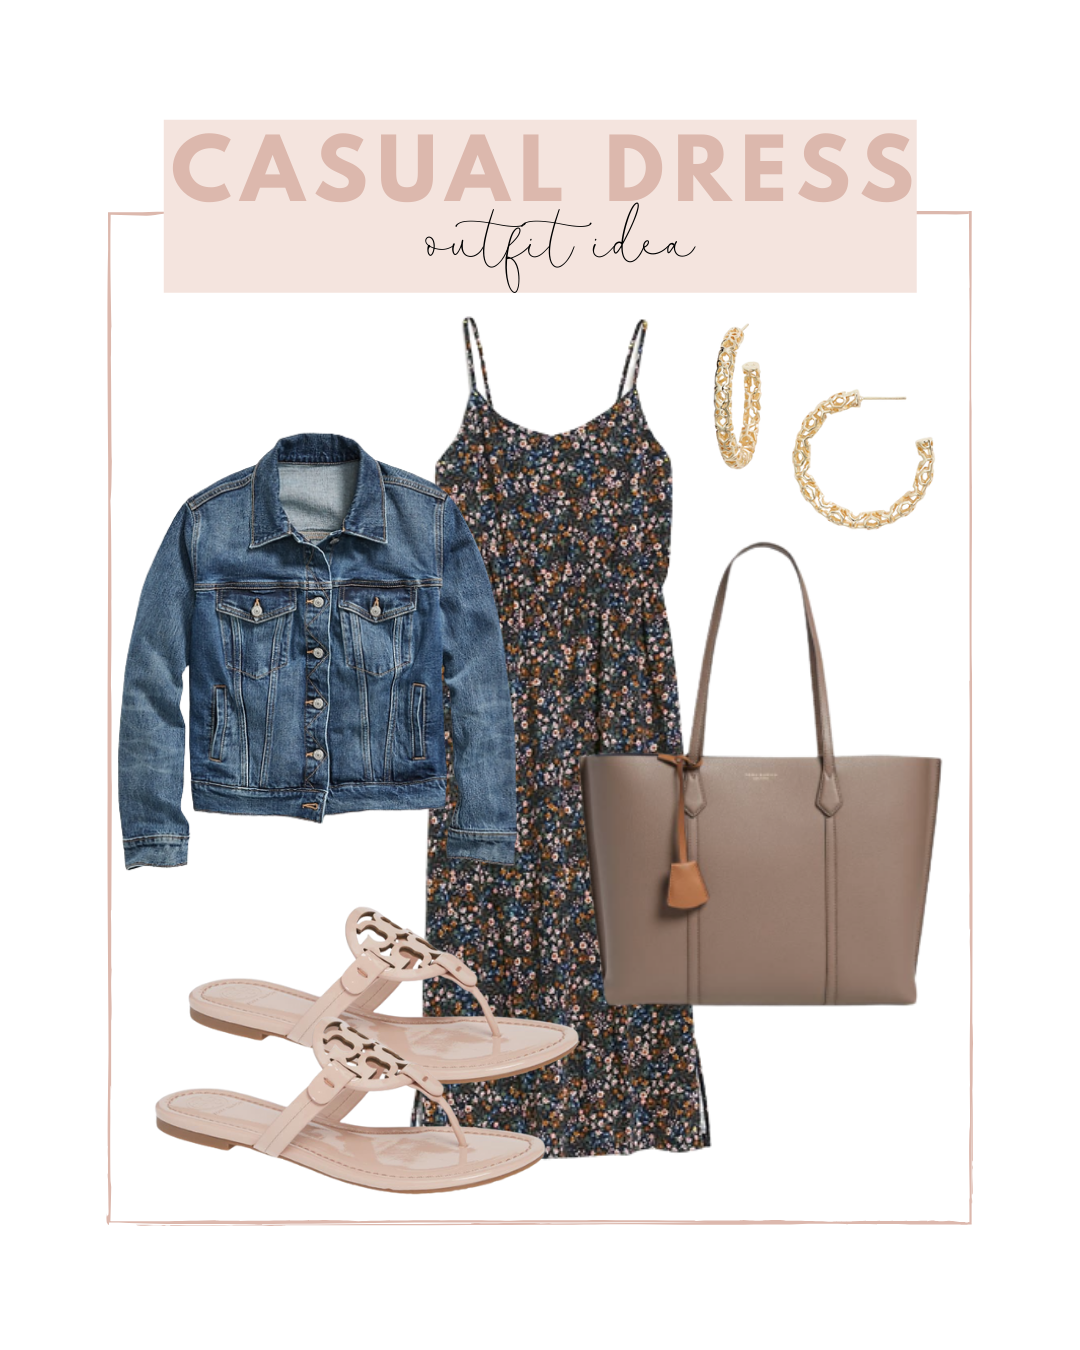 Casual dress outfit idea